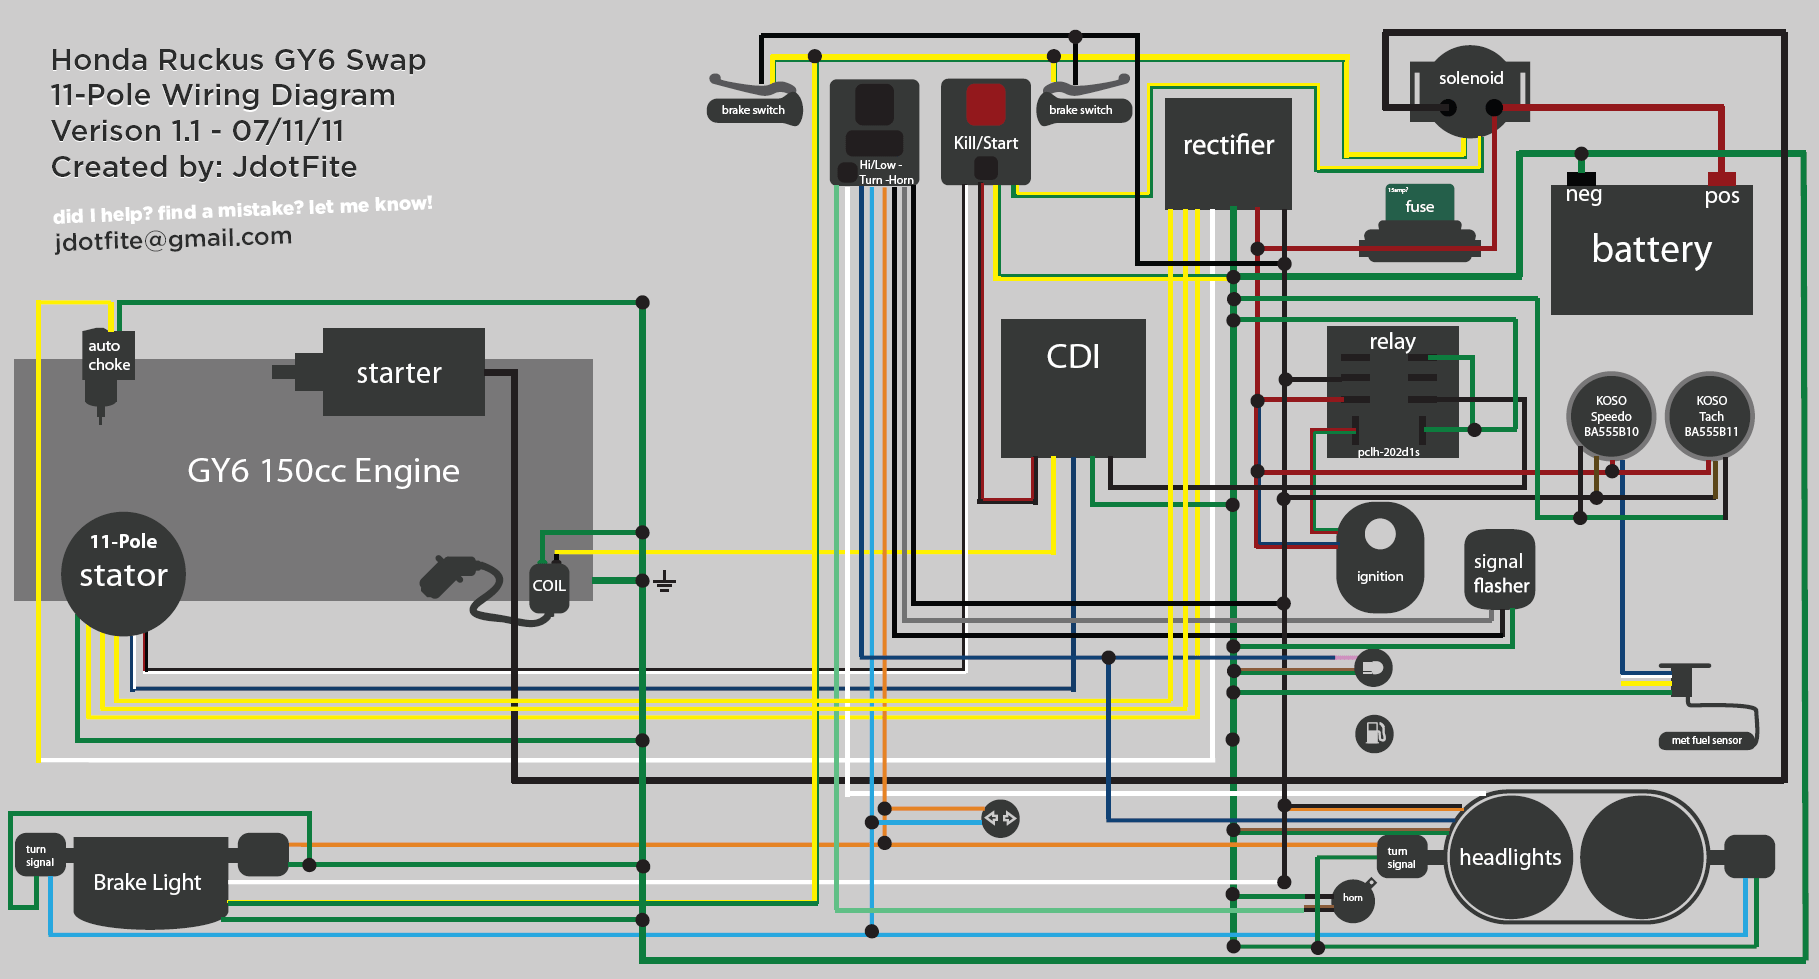 ruckus gy6 wiring diagram gy6 wiring diagram jonway 150cc scooter wiring diagram \u2022 wiring  at fashall.co